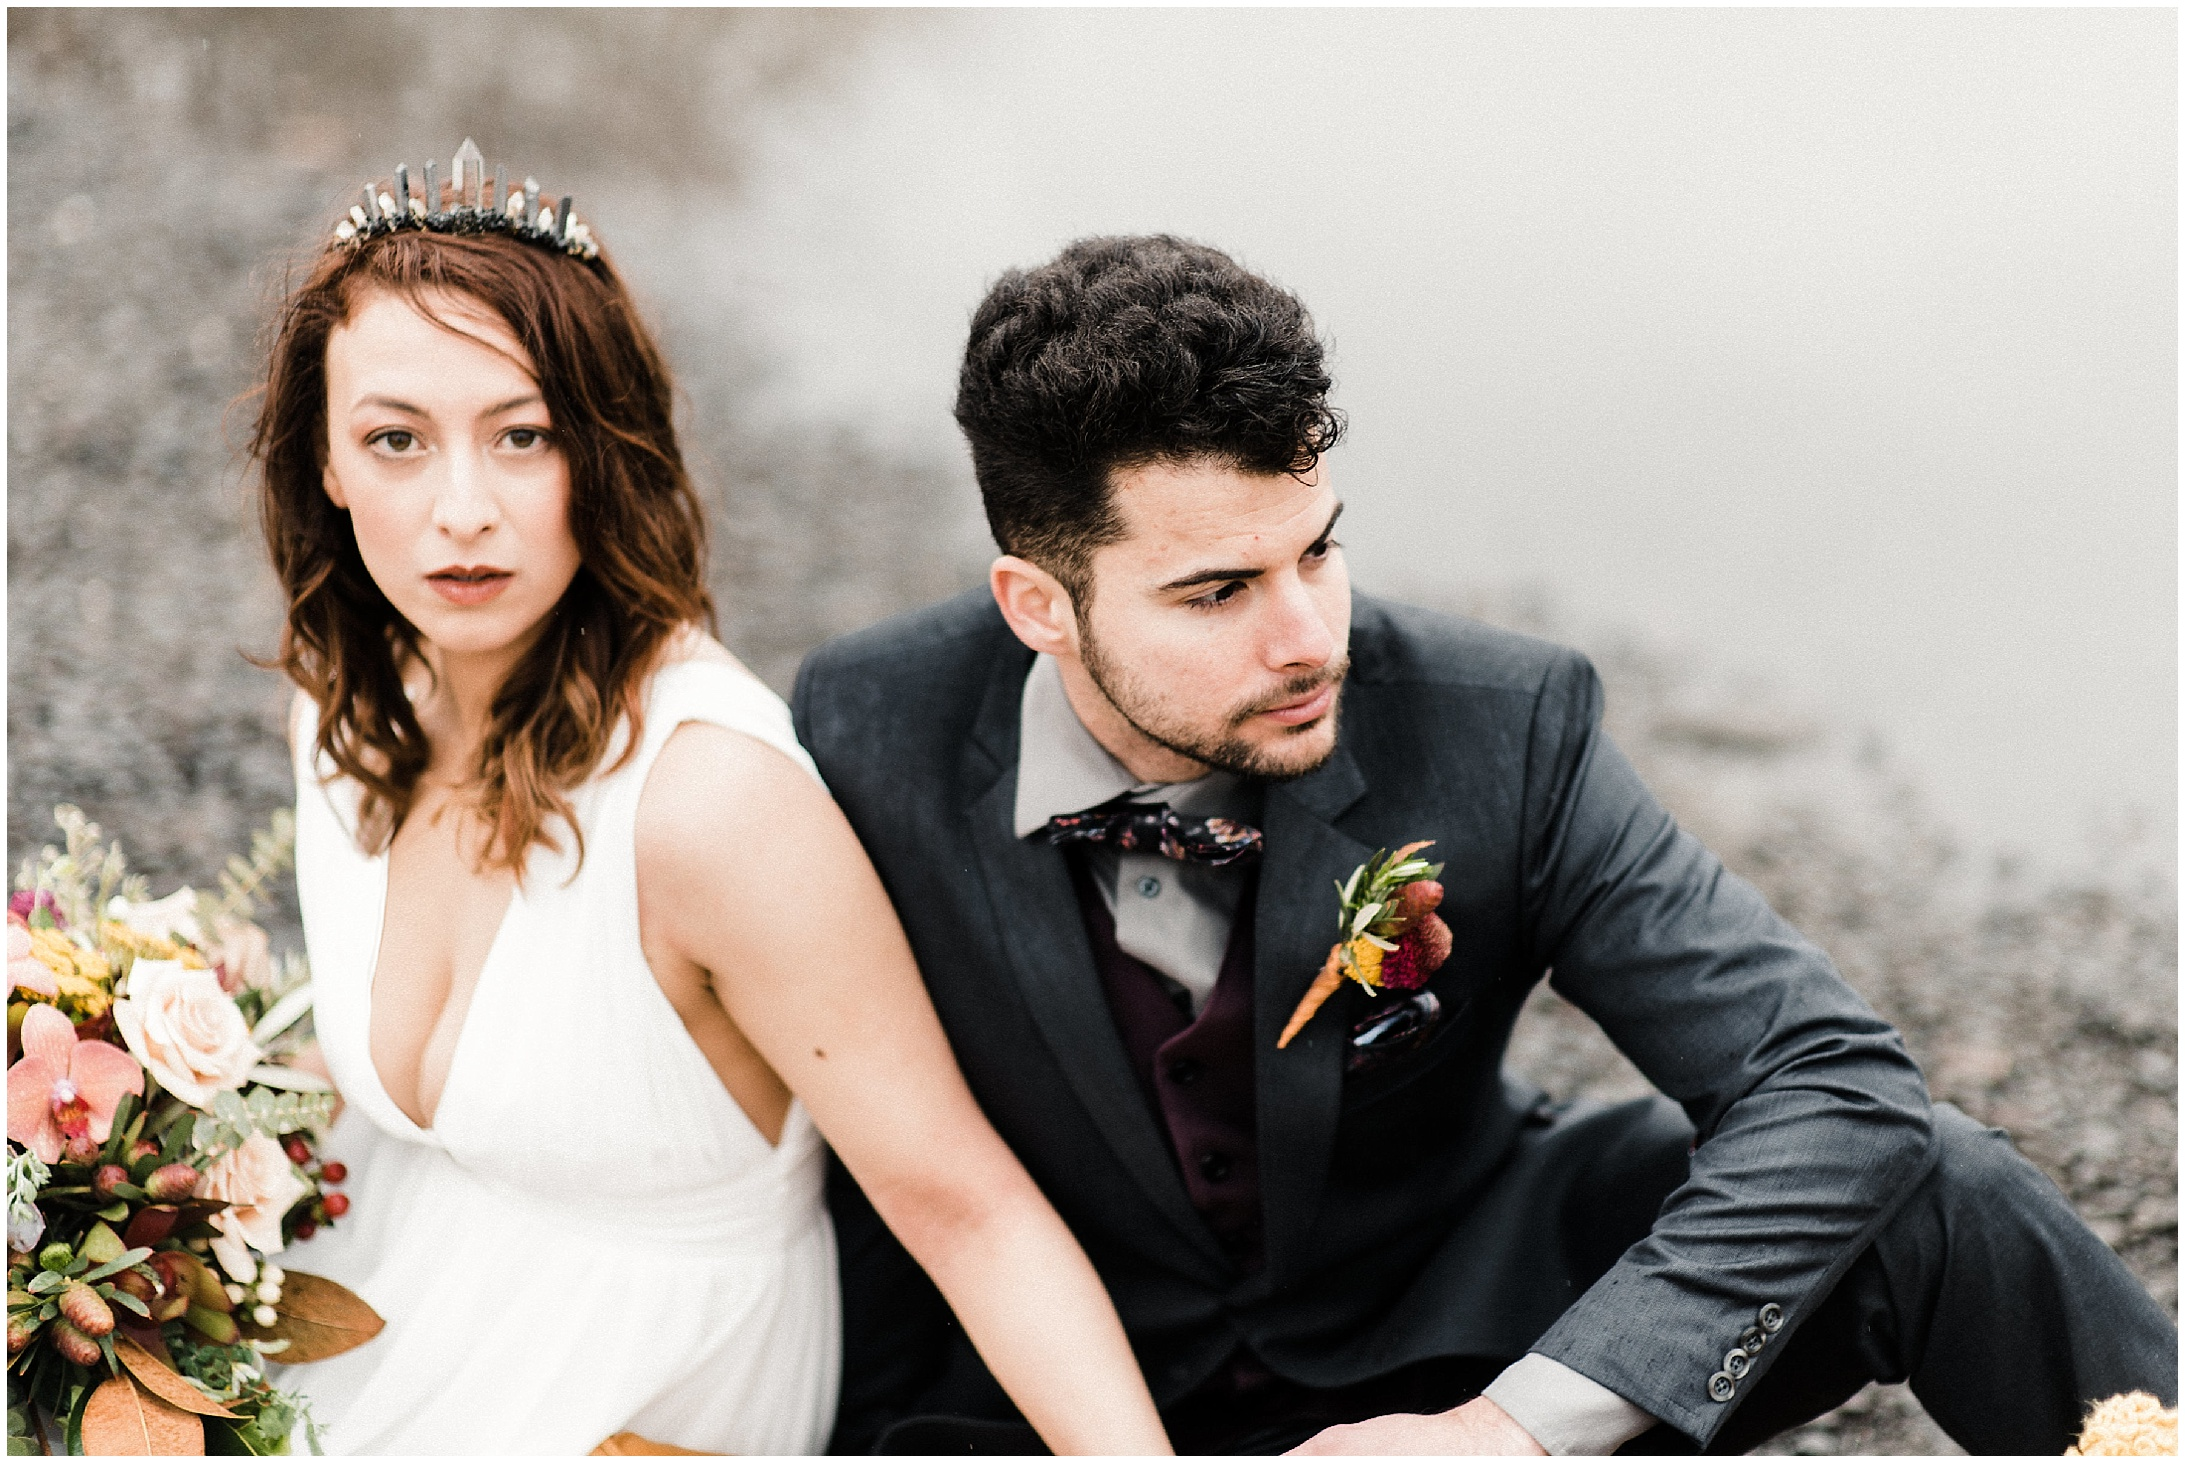 Photo of a bride and groom in a styled elopement shoot in Lyons Ferry State Park by Forthright Photo